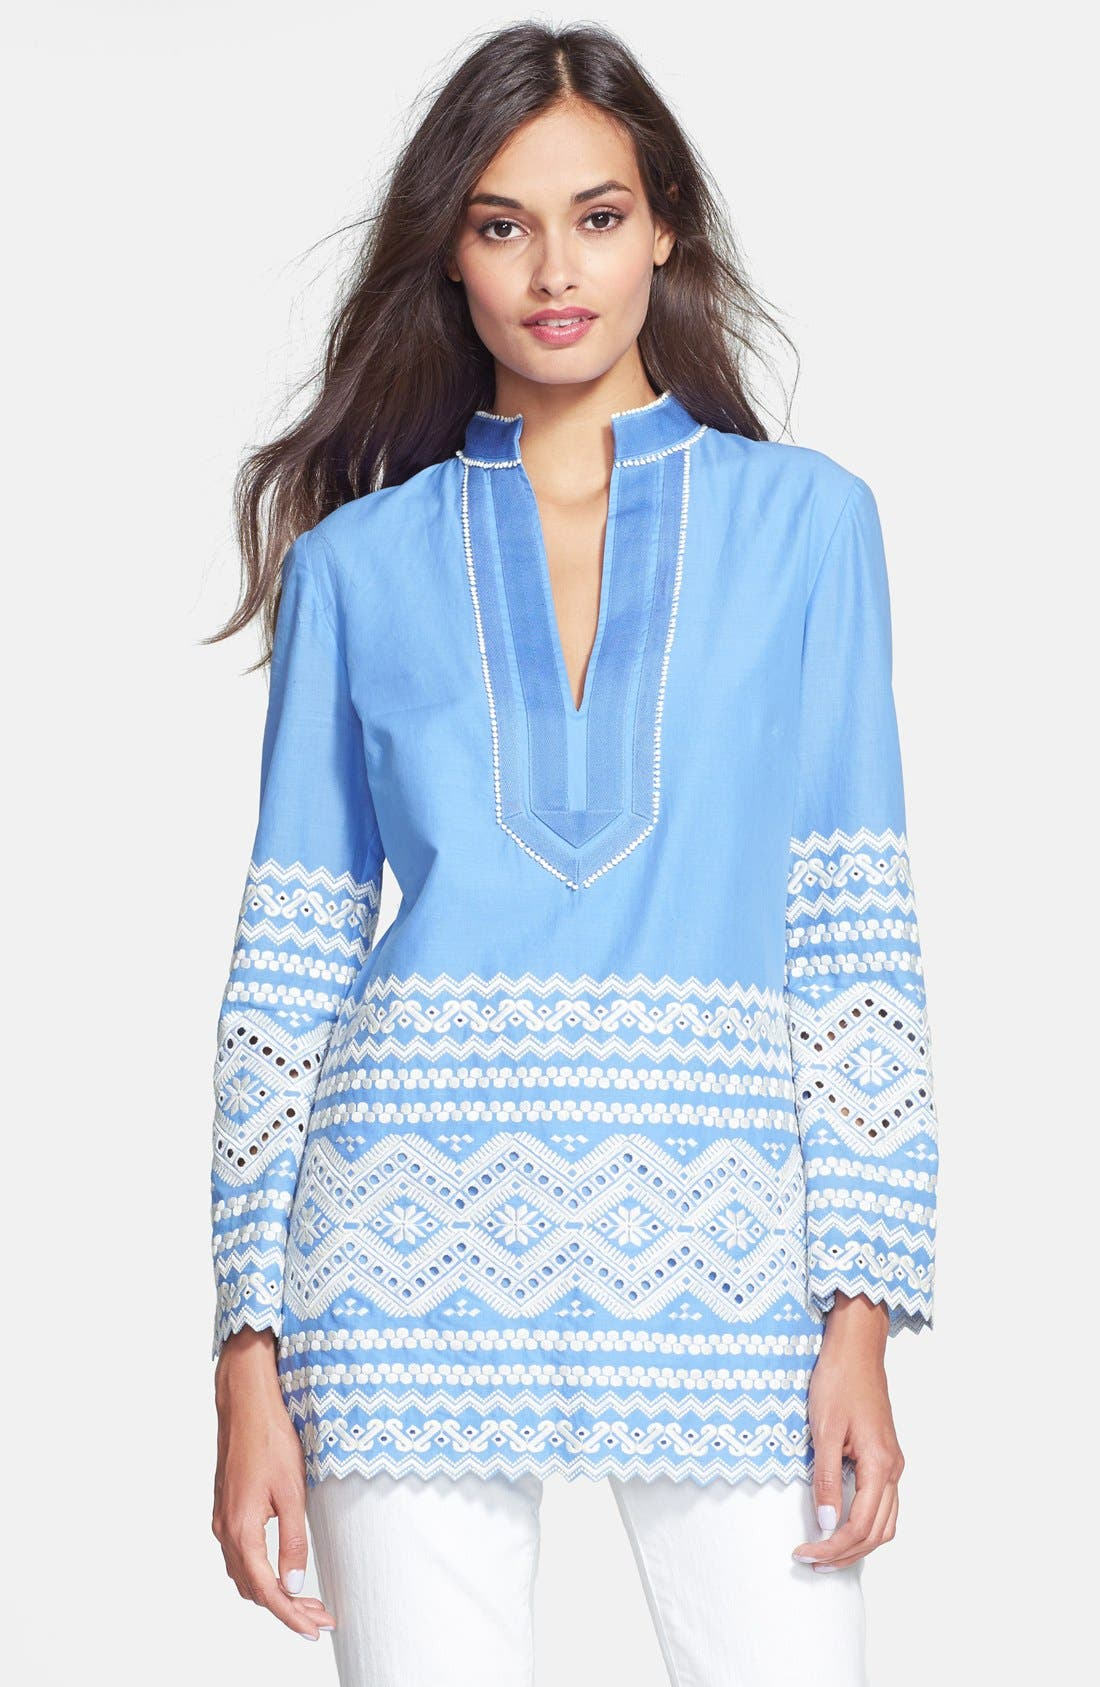 Main Image - Tory Burch 'Zita' Embroidered Tunic Top